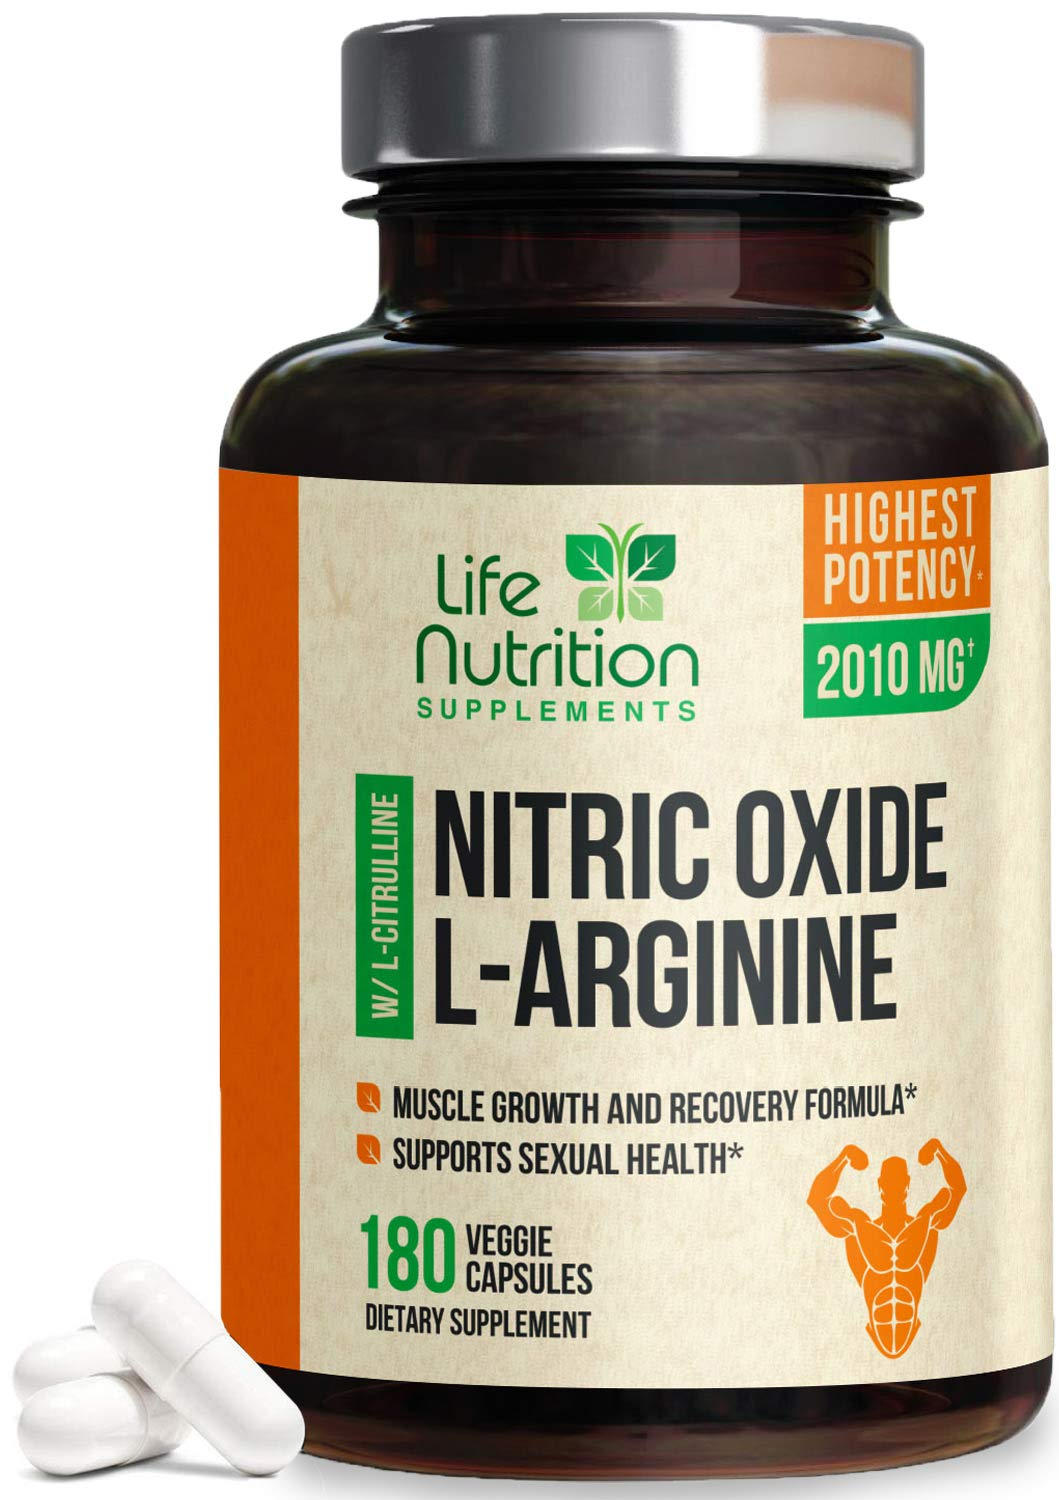 Extra Strength L Arginine Nitric Oxide Supplement 2010mg - Citrulline Malate, AAKG, Beta Alanine - Premium Muscle Building No Booster for Strength, Vascularity & Energy to Train Harder - 180 Capsules